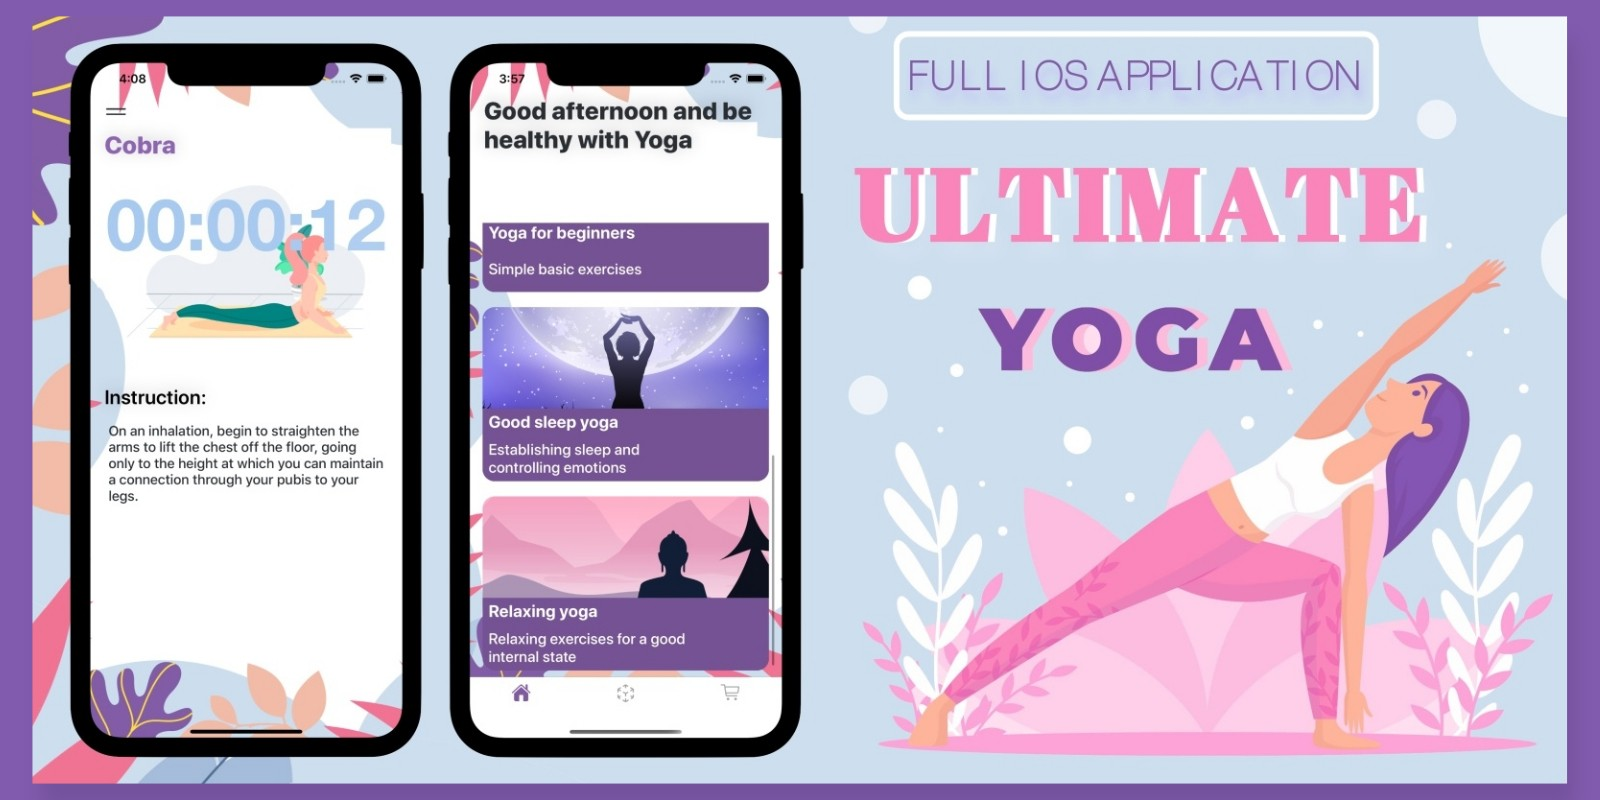 Ultimate yoga - Full iOS Application